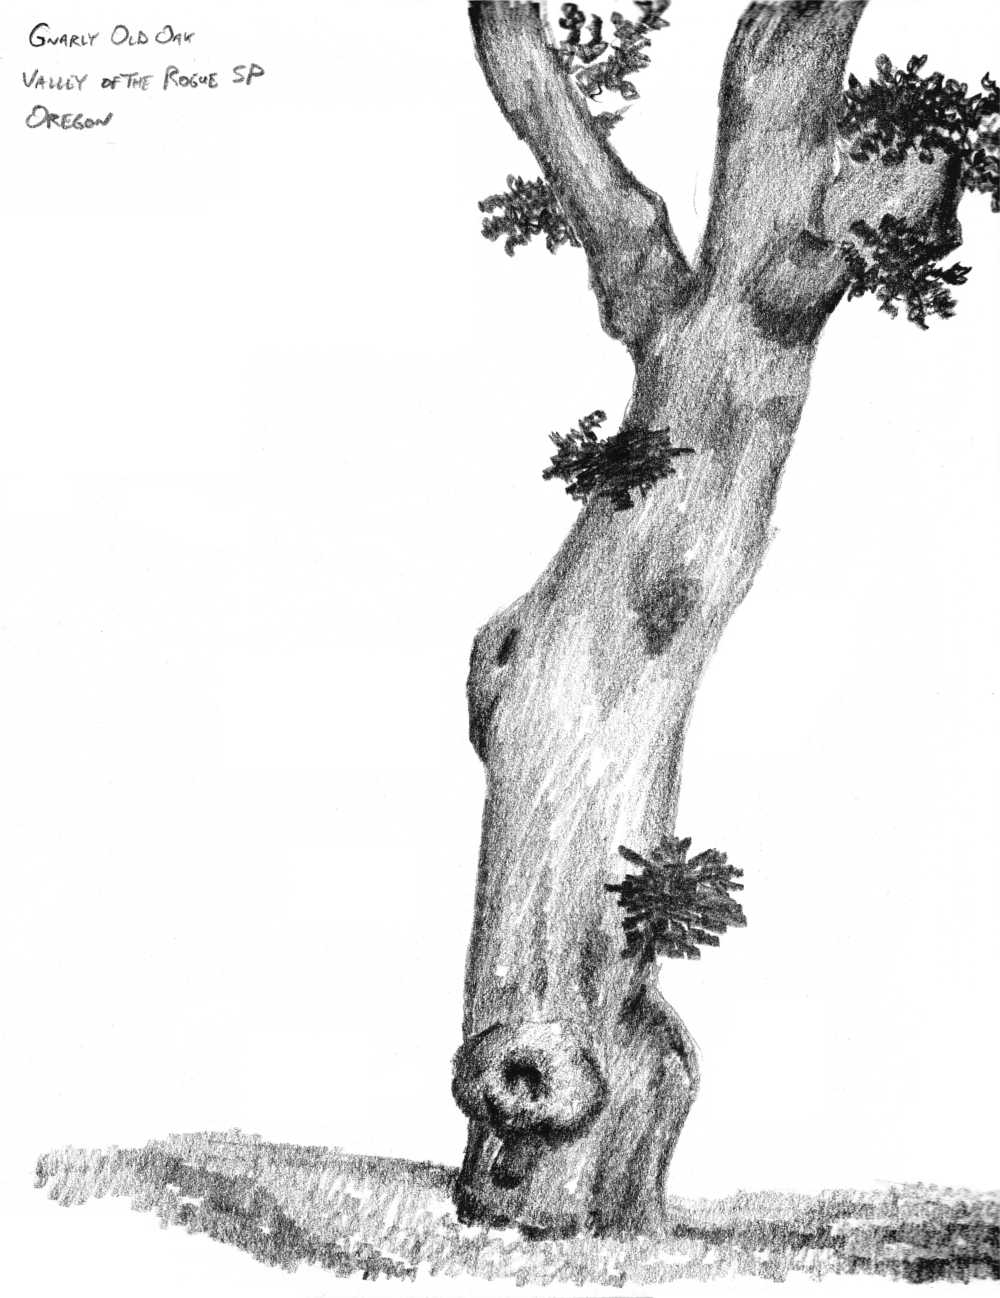 charcoal sketch of oak tree